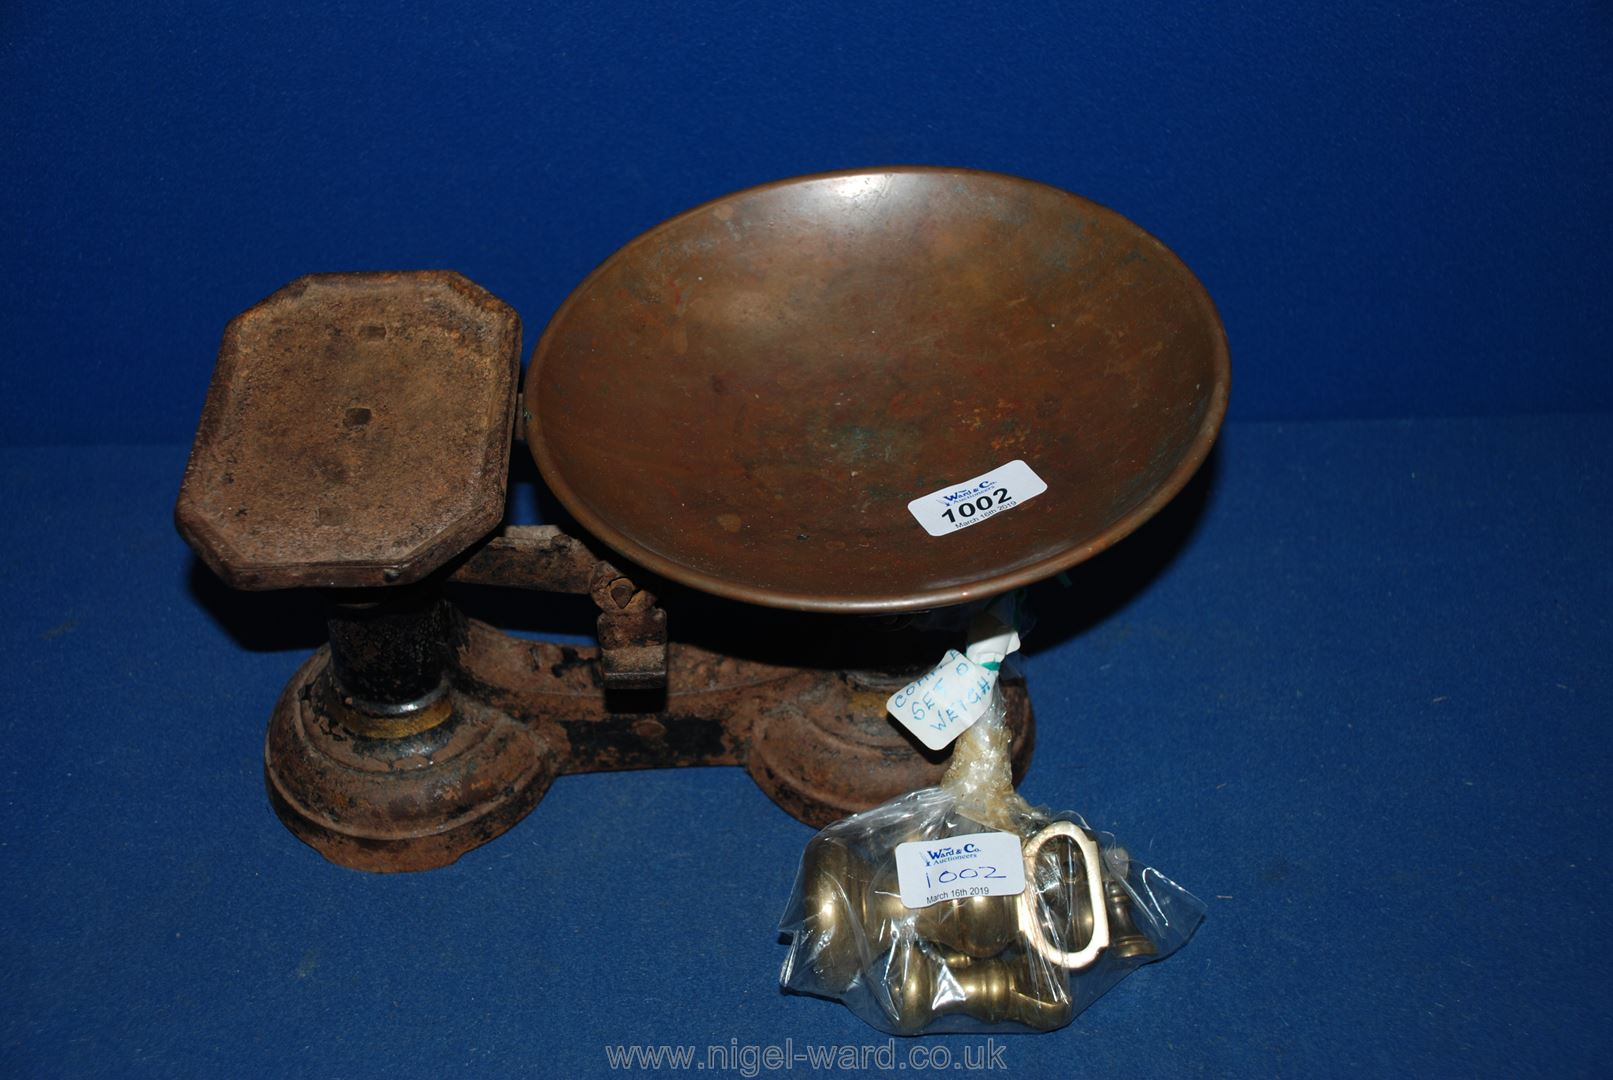 Lot 1002 - An old weighing scales with brass weights.